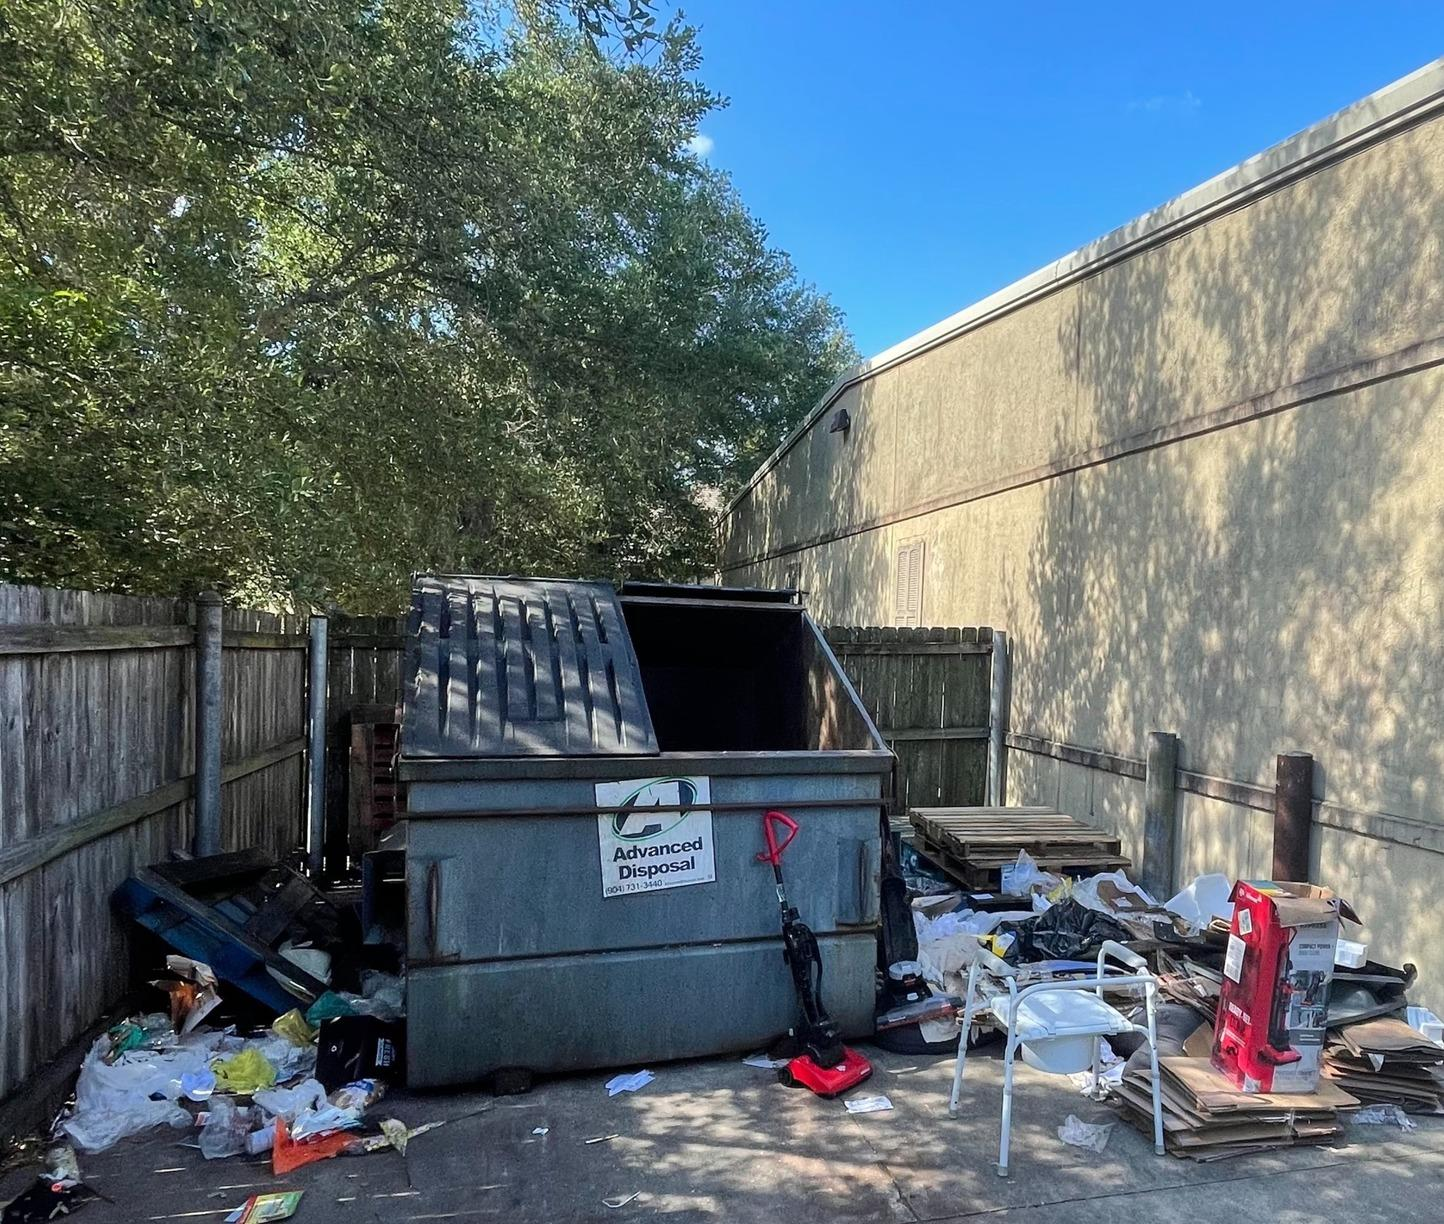 Jacksonville Florida, Commercial dumpster clean out - Before Photo